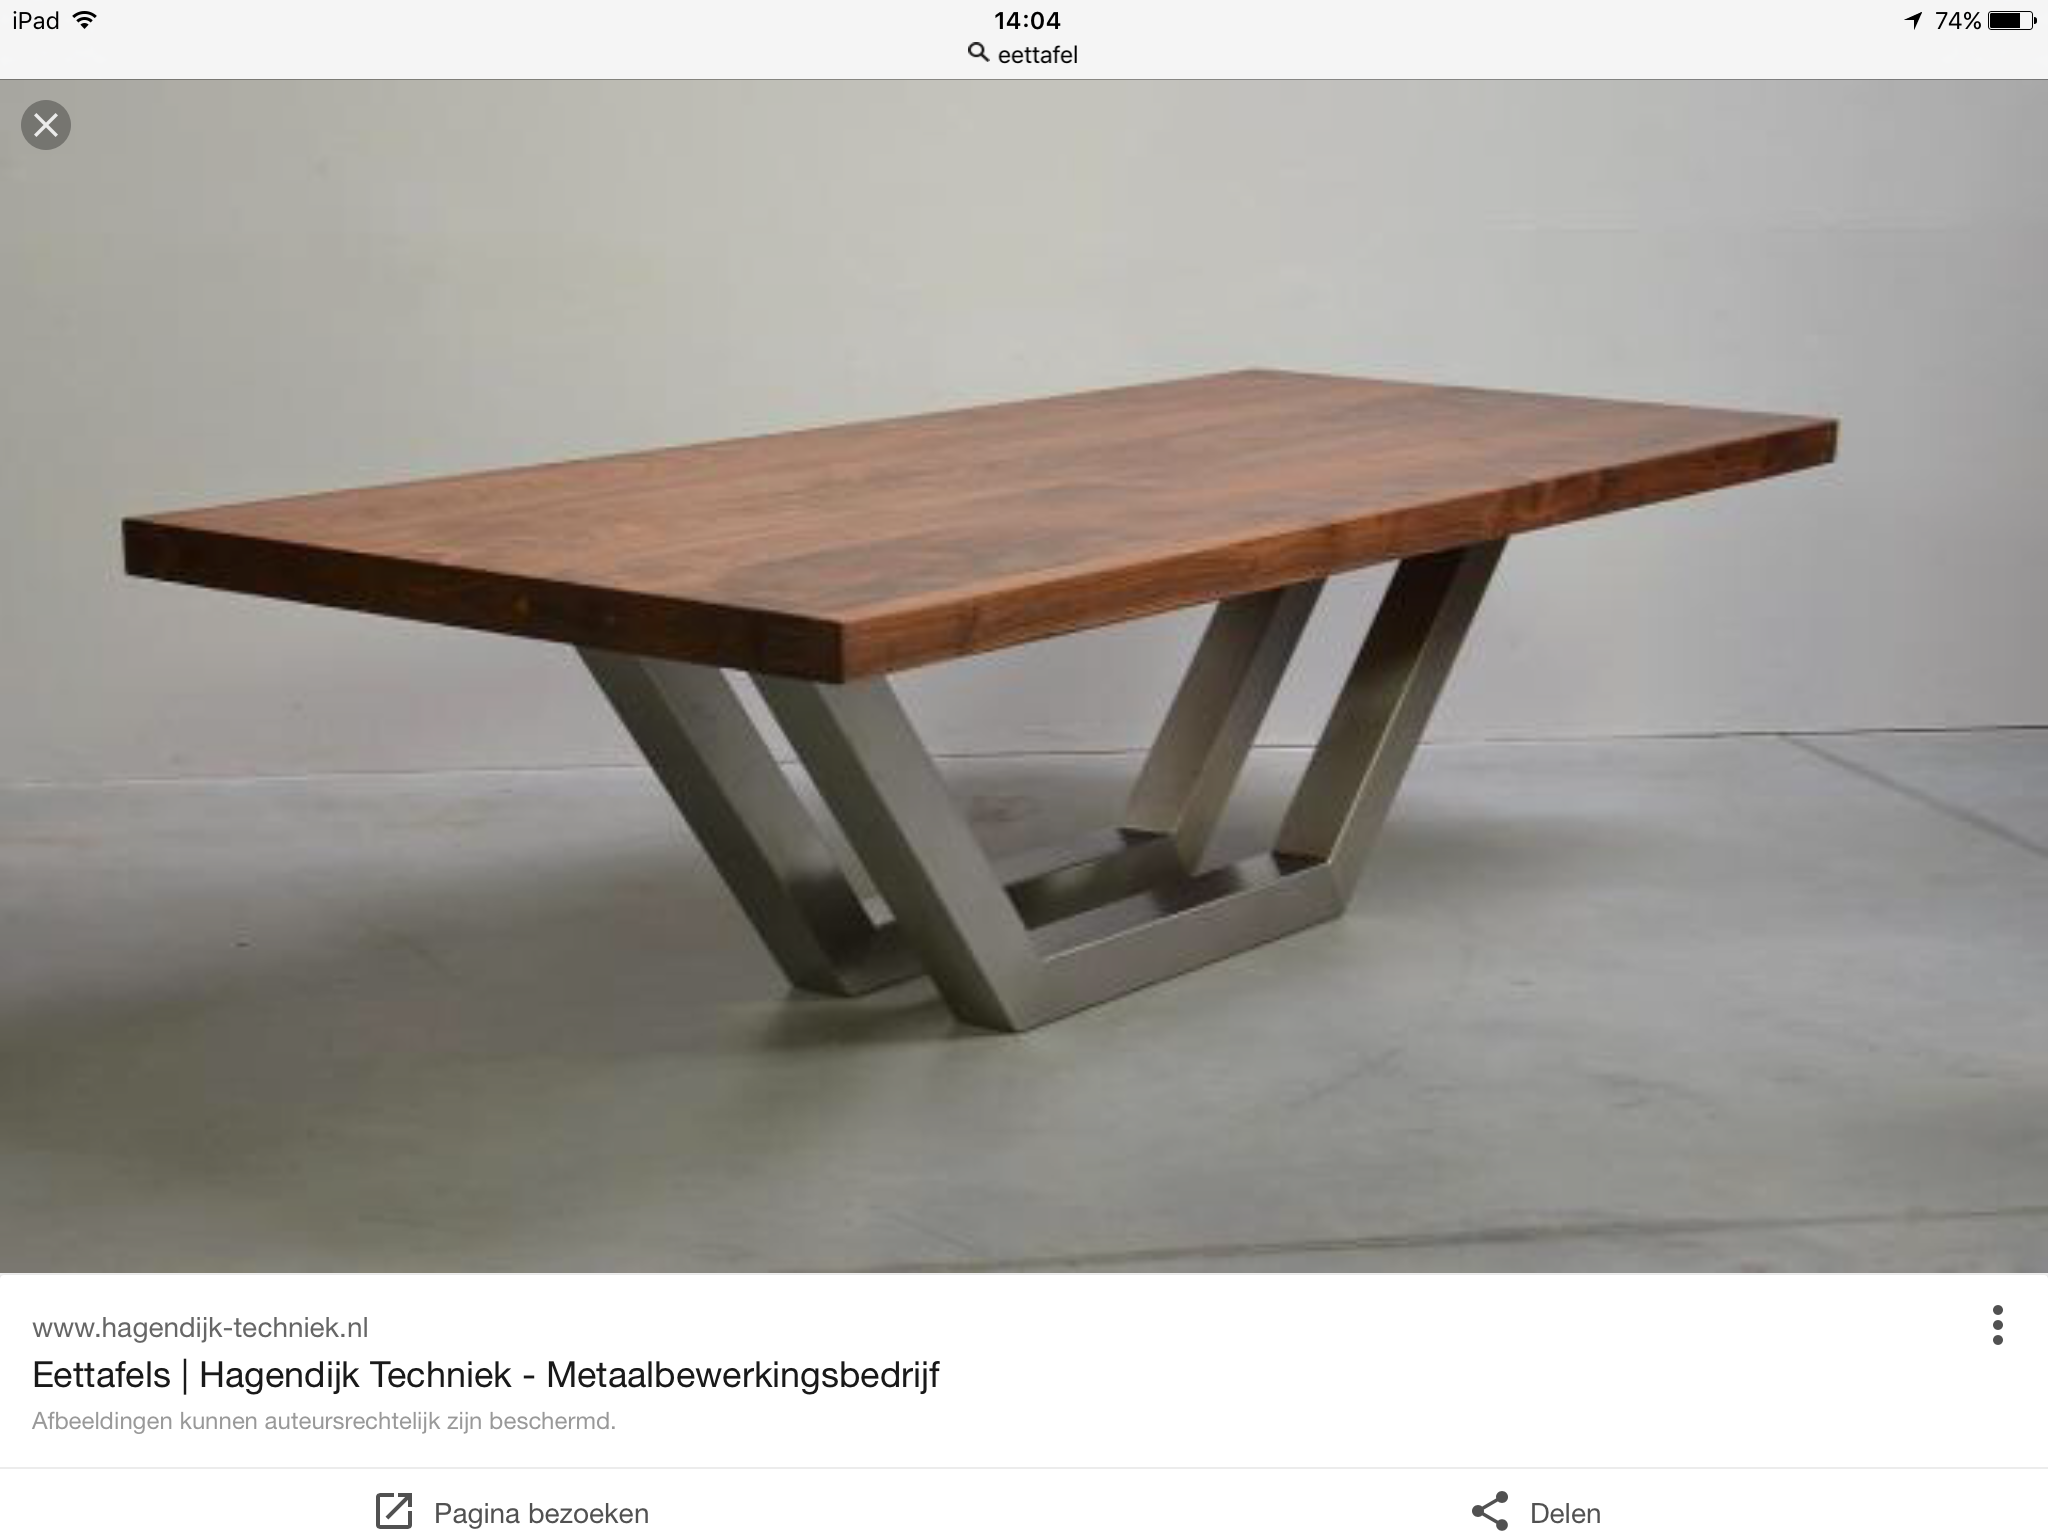 metal table legs wood table rustic table modern dining table dining room